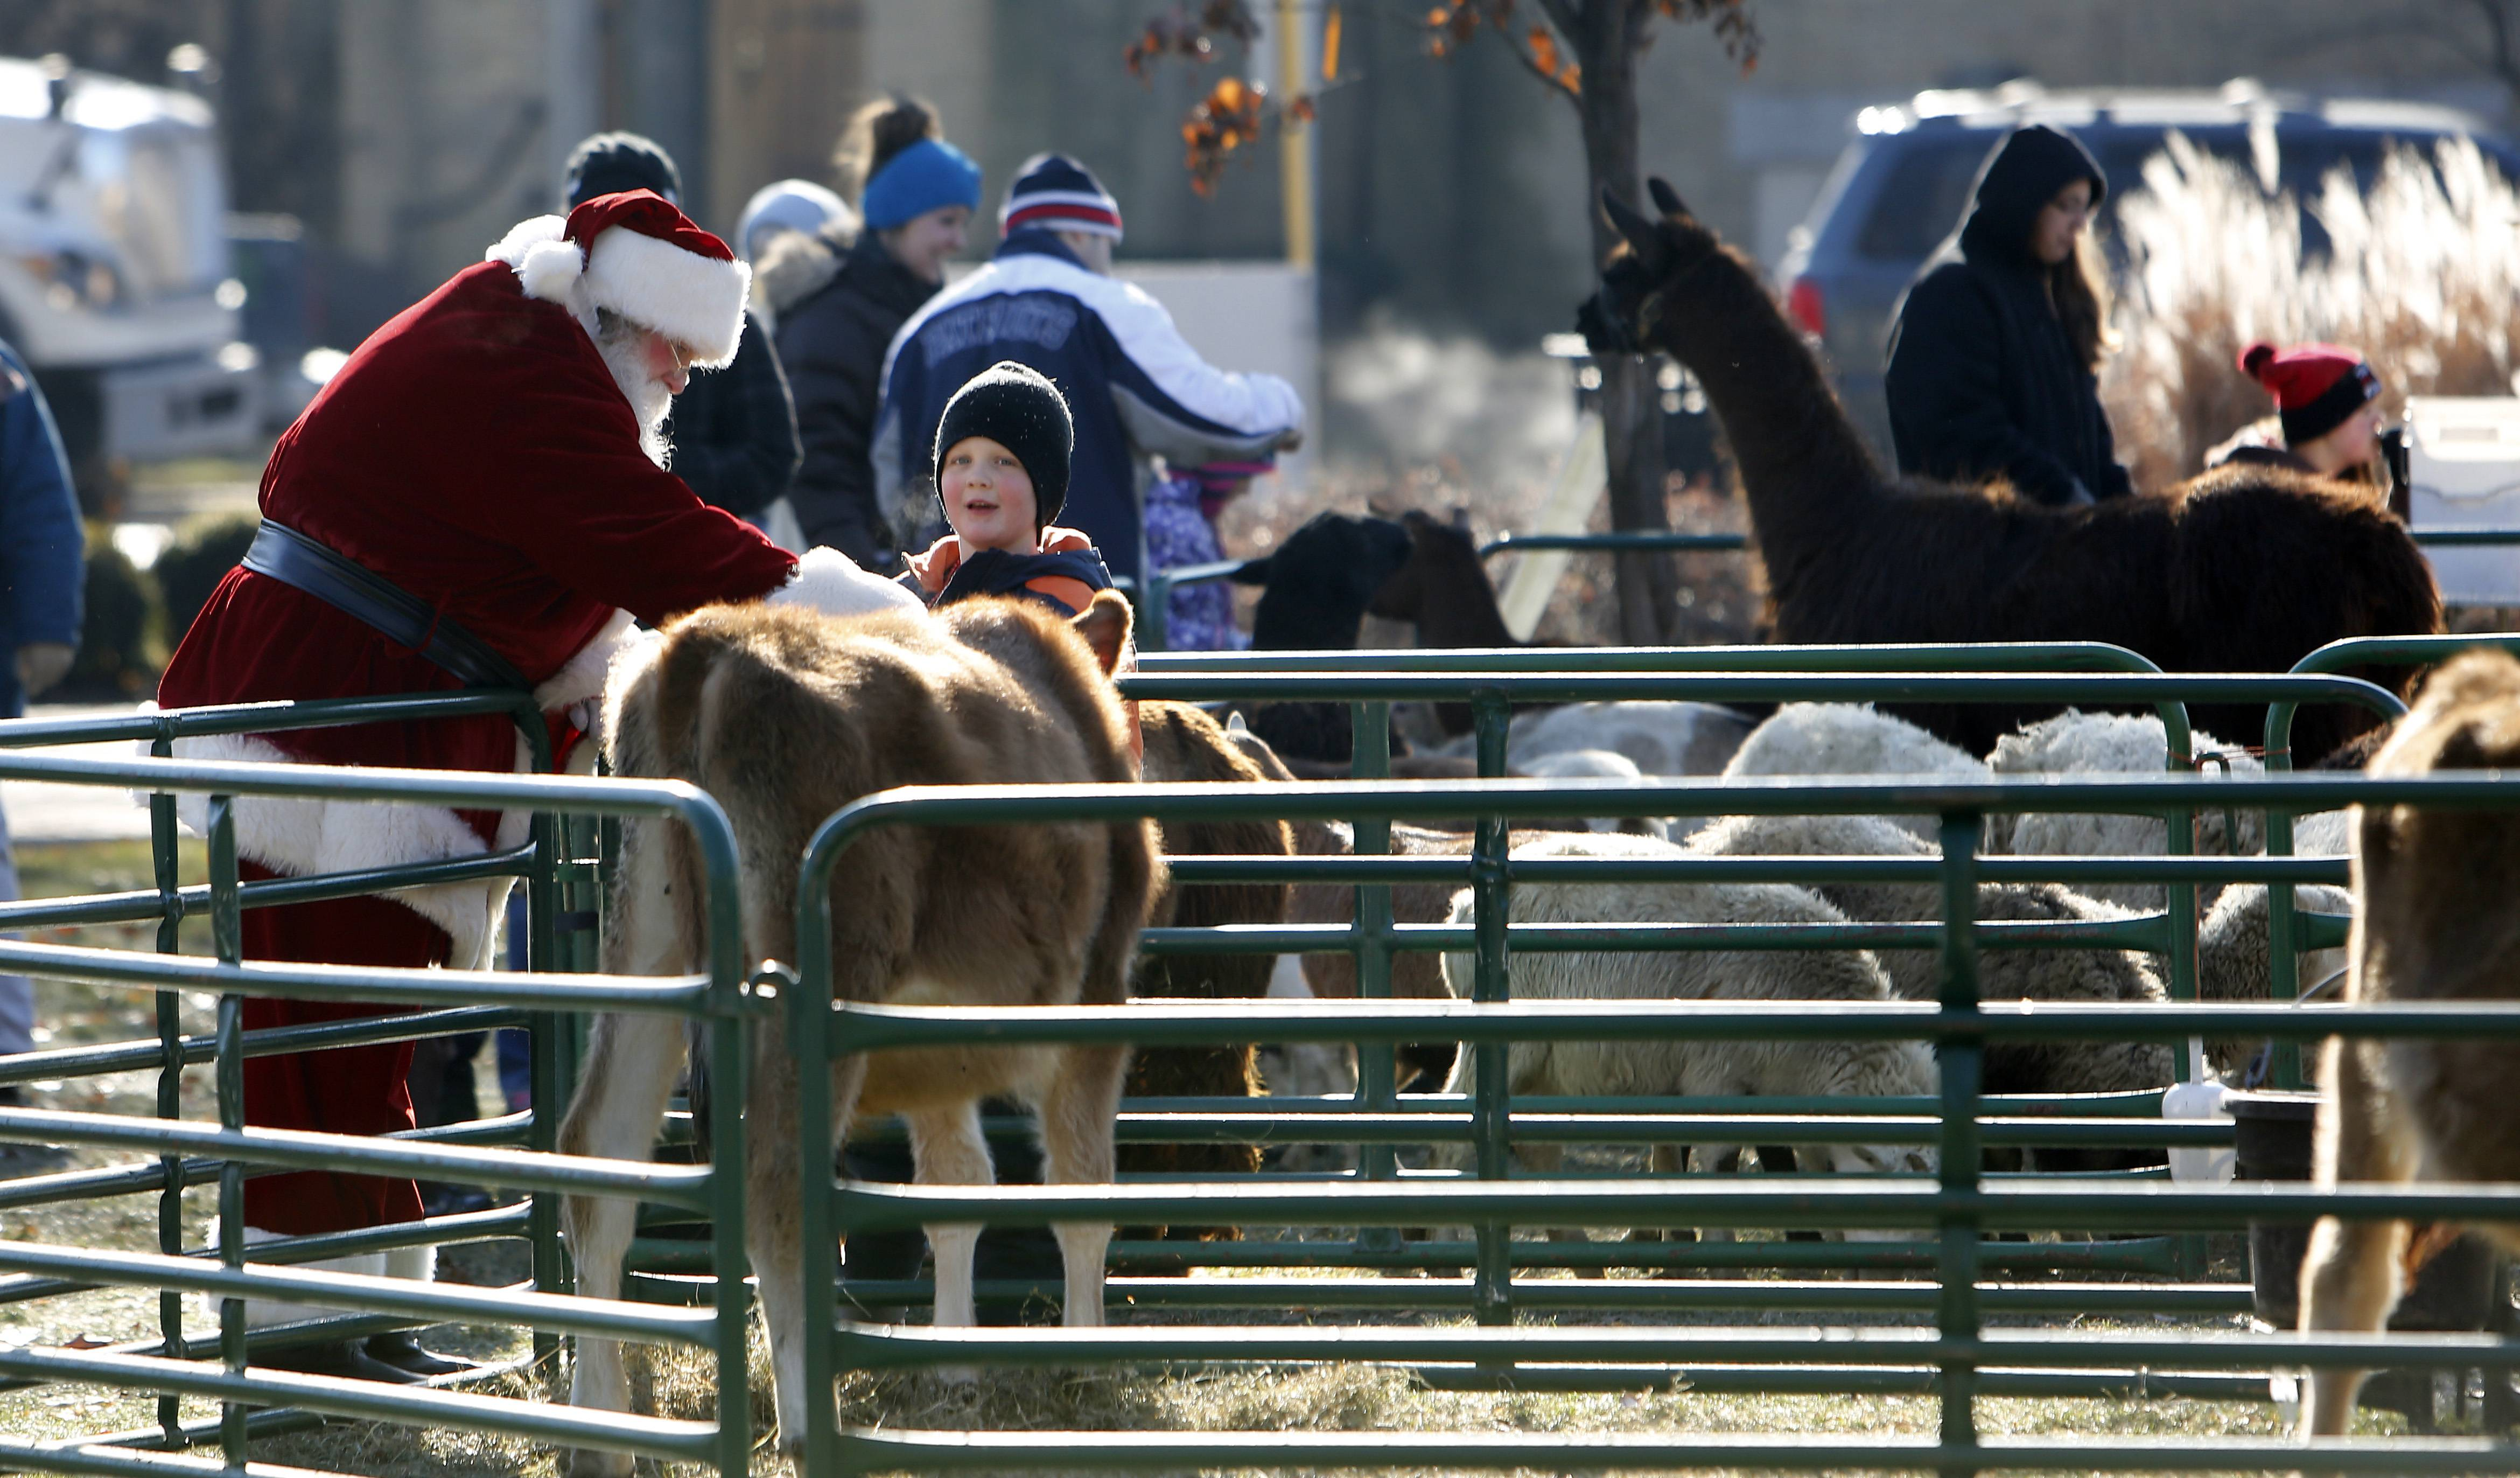 Santa takes a moment to greet some of the animals at the petting zoo during Dickens in Dundee at Grafelman Park in West Dundee.